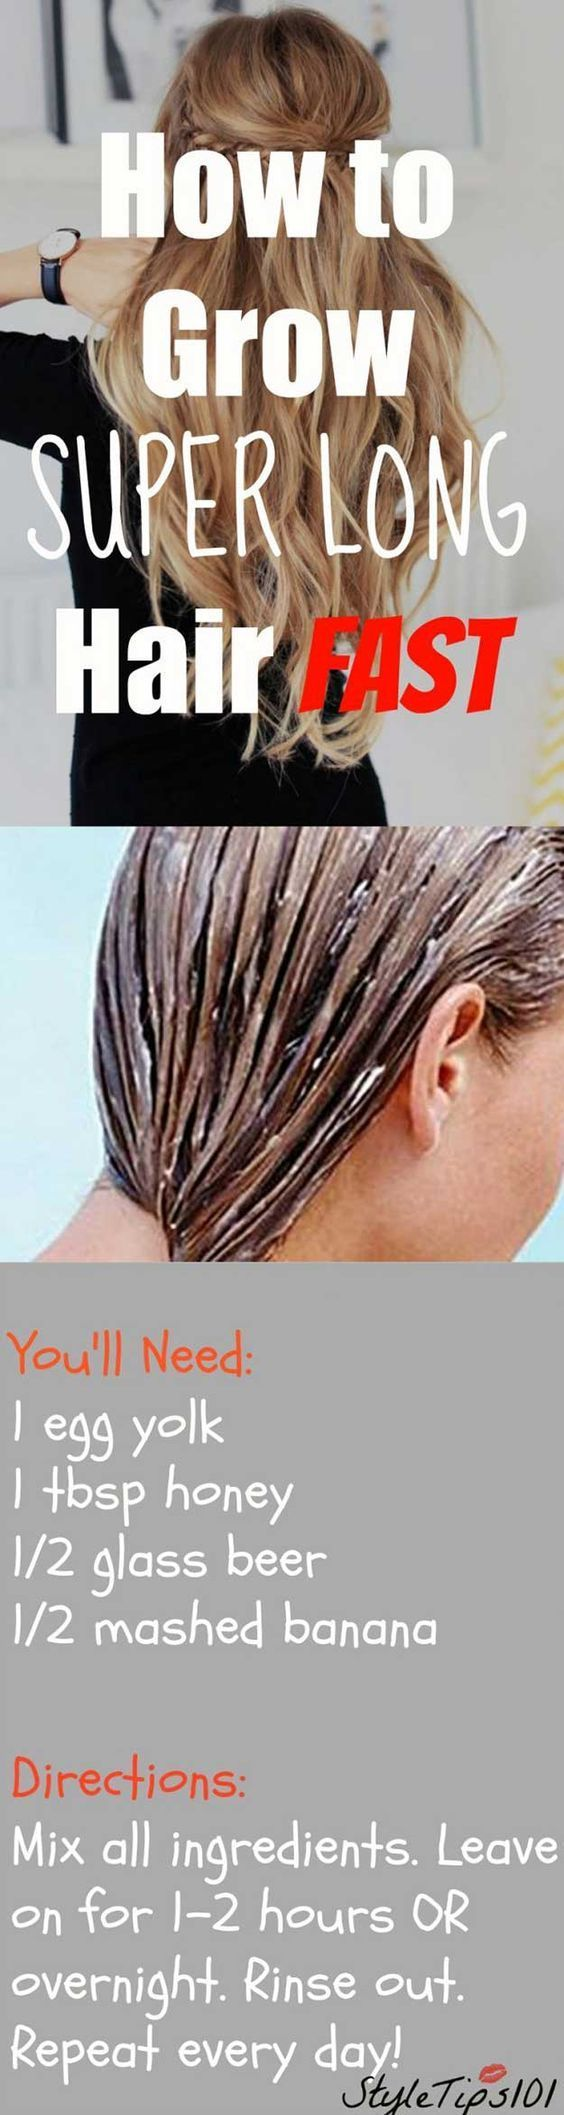 Tips and Tricks For Long, Healthy Hair - How to Grow Super Long Hair - Healthy Hair Growth Tips and Styling Tricks - Home Remedies and Curling Techniques for How To Grow the Best Hairdos - Simple Pony Tails, Bun Tutorials - Tips for Colour, Bangs and Gorgeous Locks - thegoddess.com/tips-and-tricks-for-long-hair